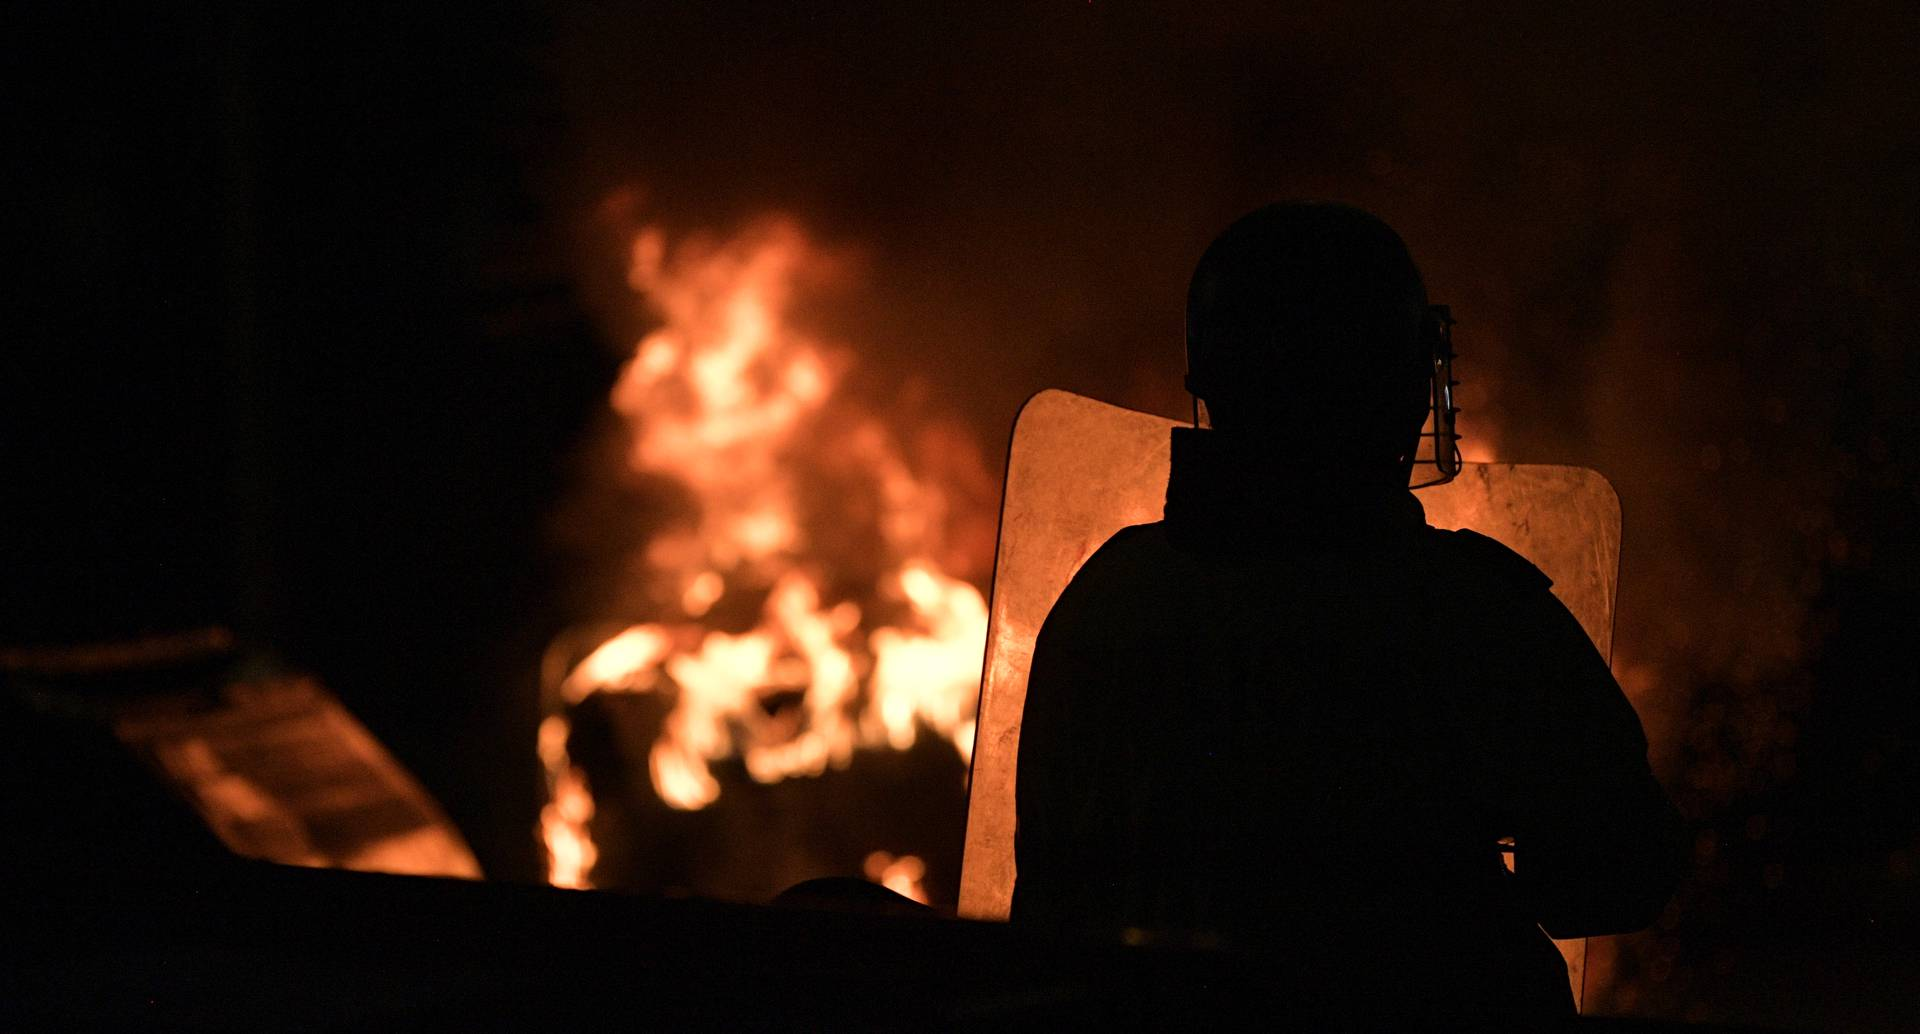 A riot police officer stands in front of a bonfire during a protest against police brutality in Bogota, on September 10, 2020. - At least 10 people were killed and hundreds wounded after rioting broke out in the Colombian capital Bogota during protests over the death of a man repeatedly tasered by police, authorities said Thursday. (Photo by Raul ARBOLEDA / AFP)